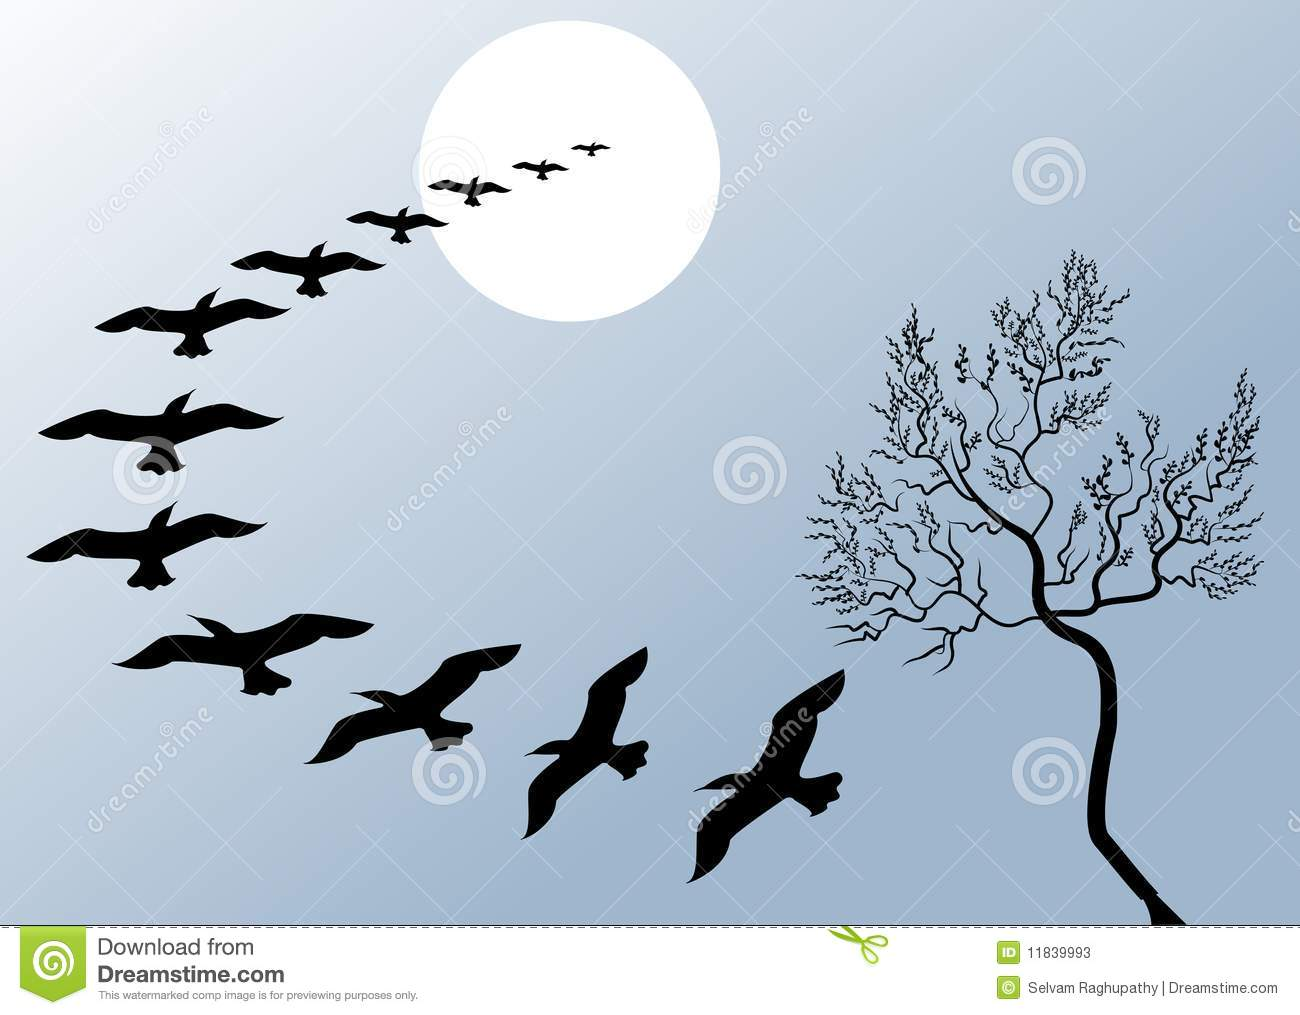 Flying Birds Free Stock Photos Download 3 416 Free Stock: Beautiful Flying Birds Stock Vector. Image Of Background